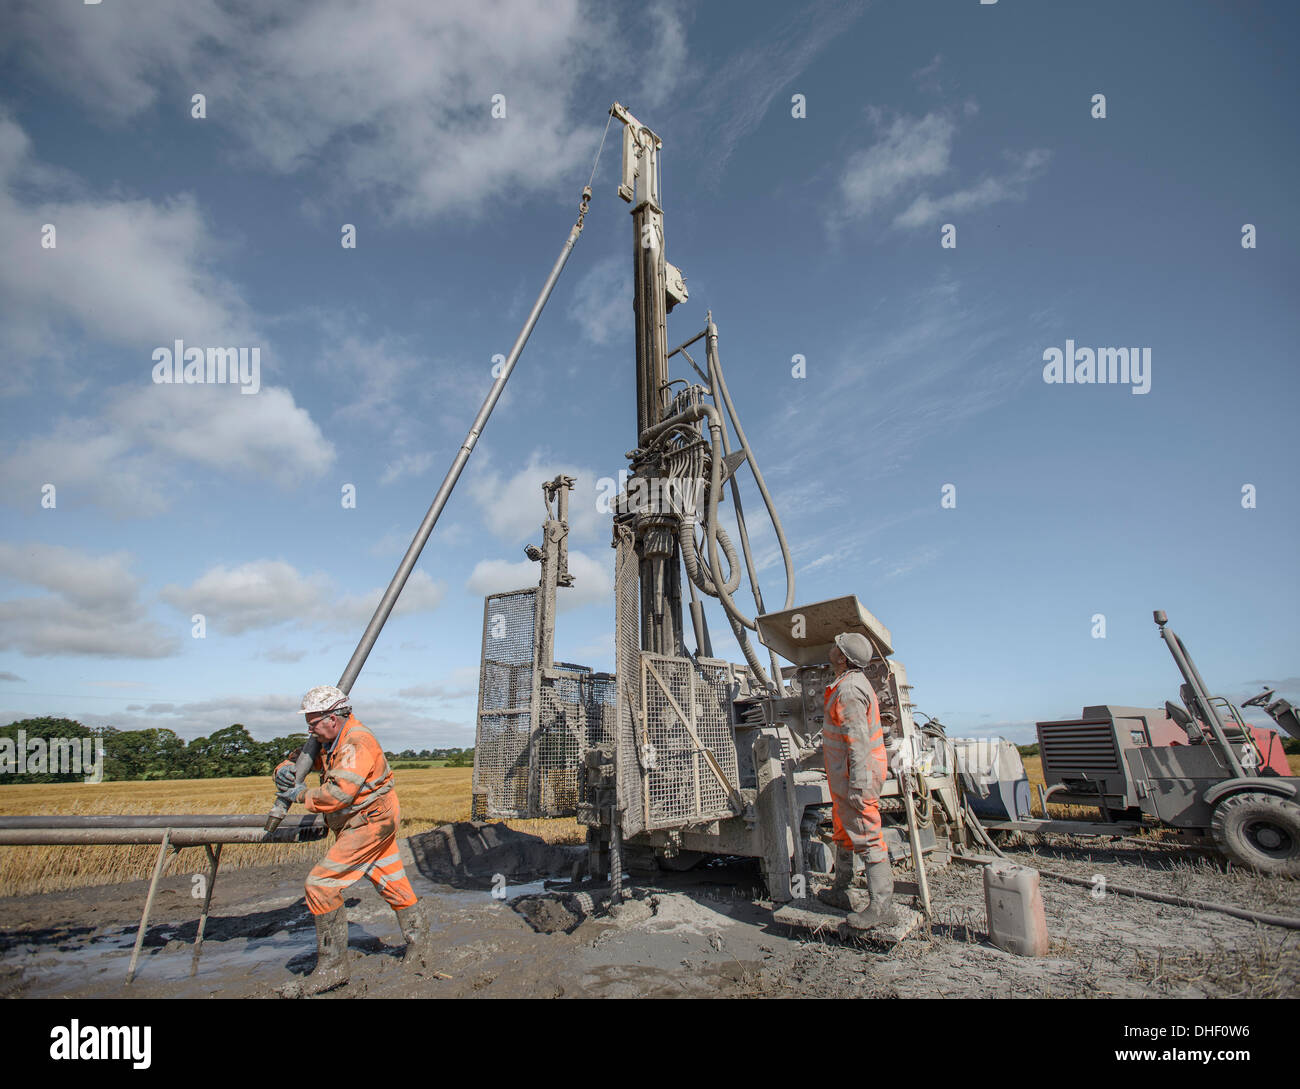 Workers operating drilling rig to explore for coal in field - Stock Image